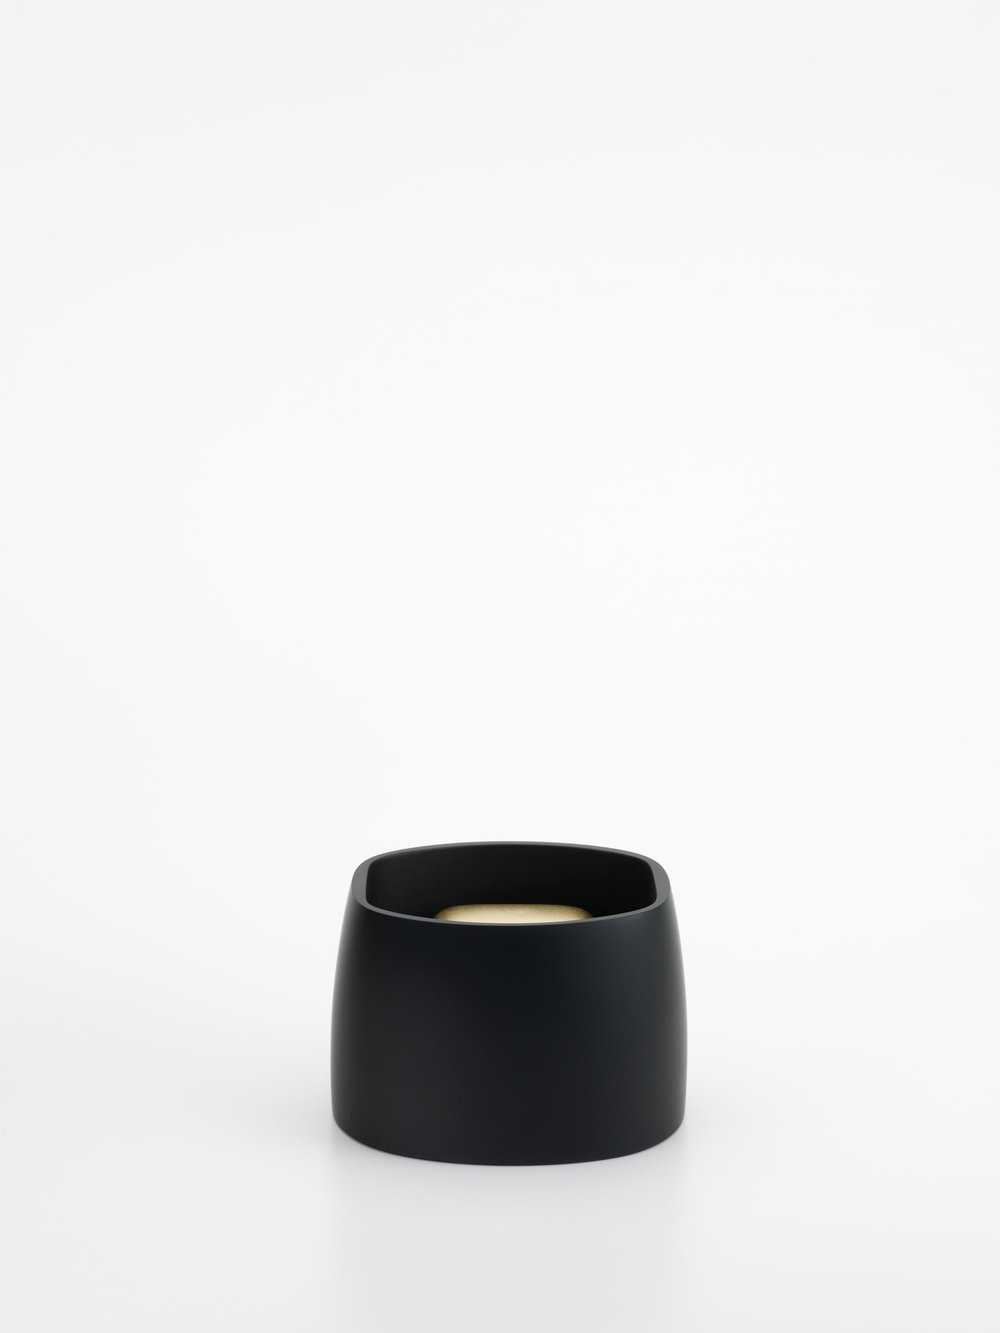 Andrea Walsh   Contained Box  Black Glass and Black Fine Bone China with 22ct Burnished Gold Exterior 7.5cm x 11.5cm x 10cm Photo: Shannon Tofts